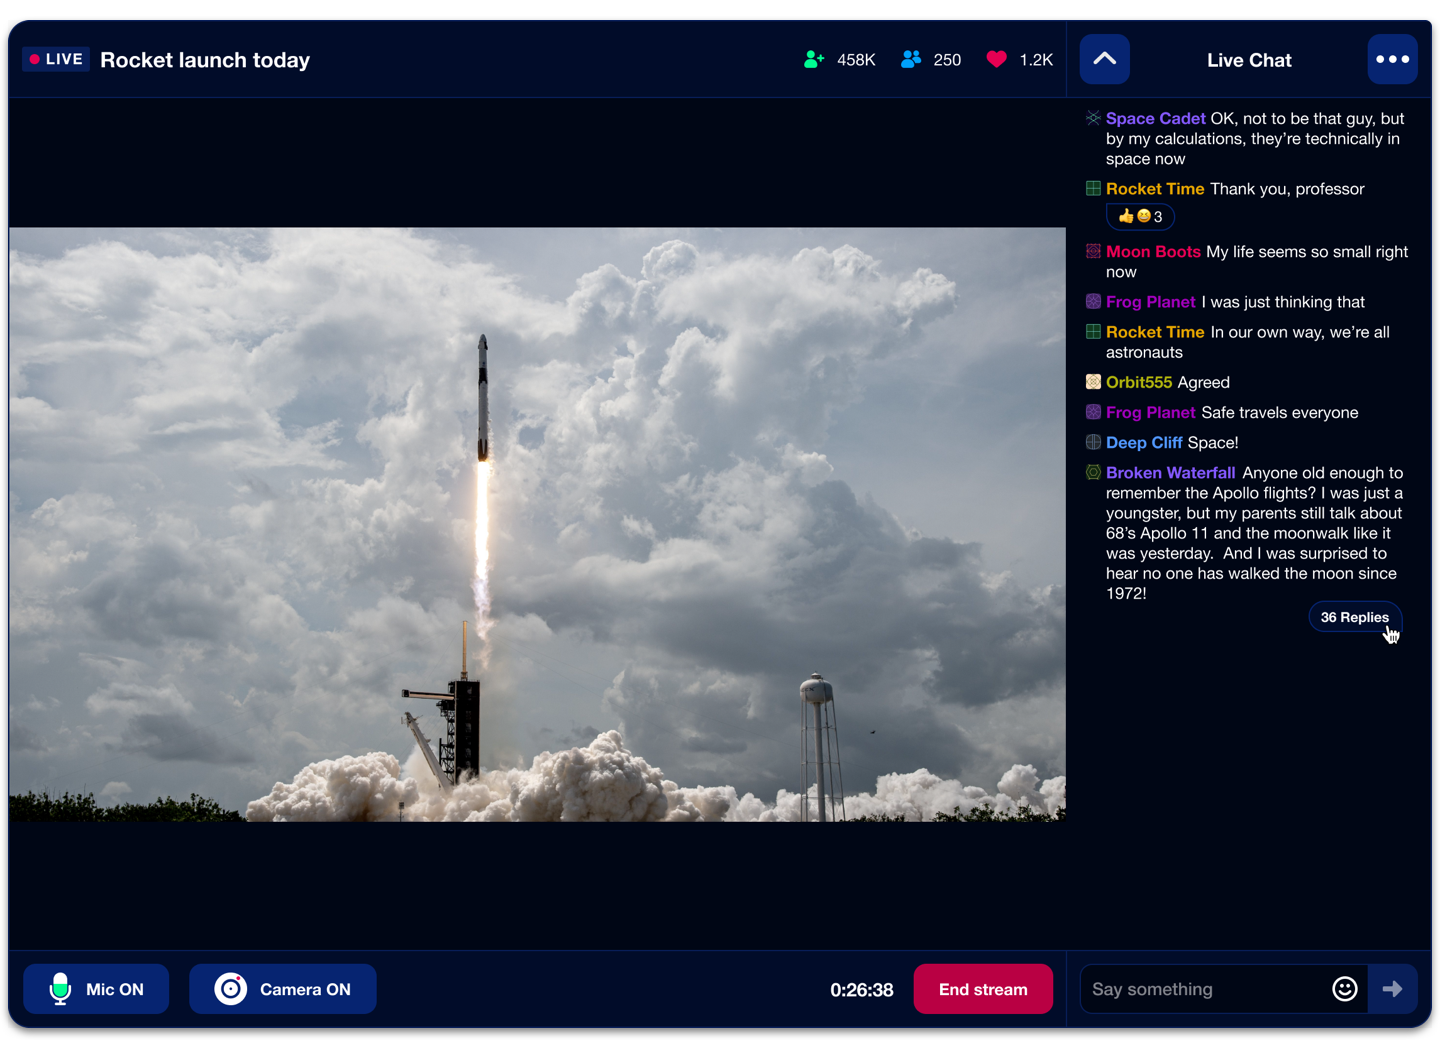 A livestream video of a NASA launch with an accompanying chat including threads and replies.